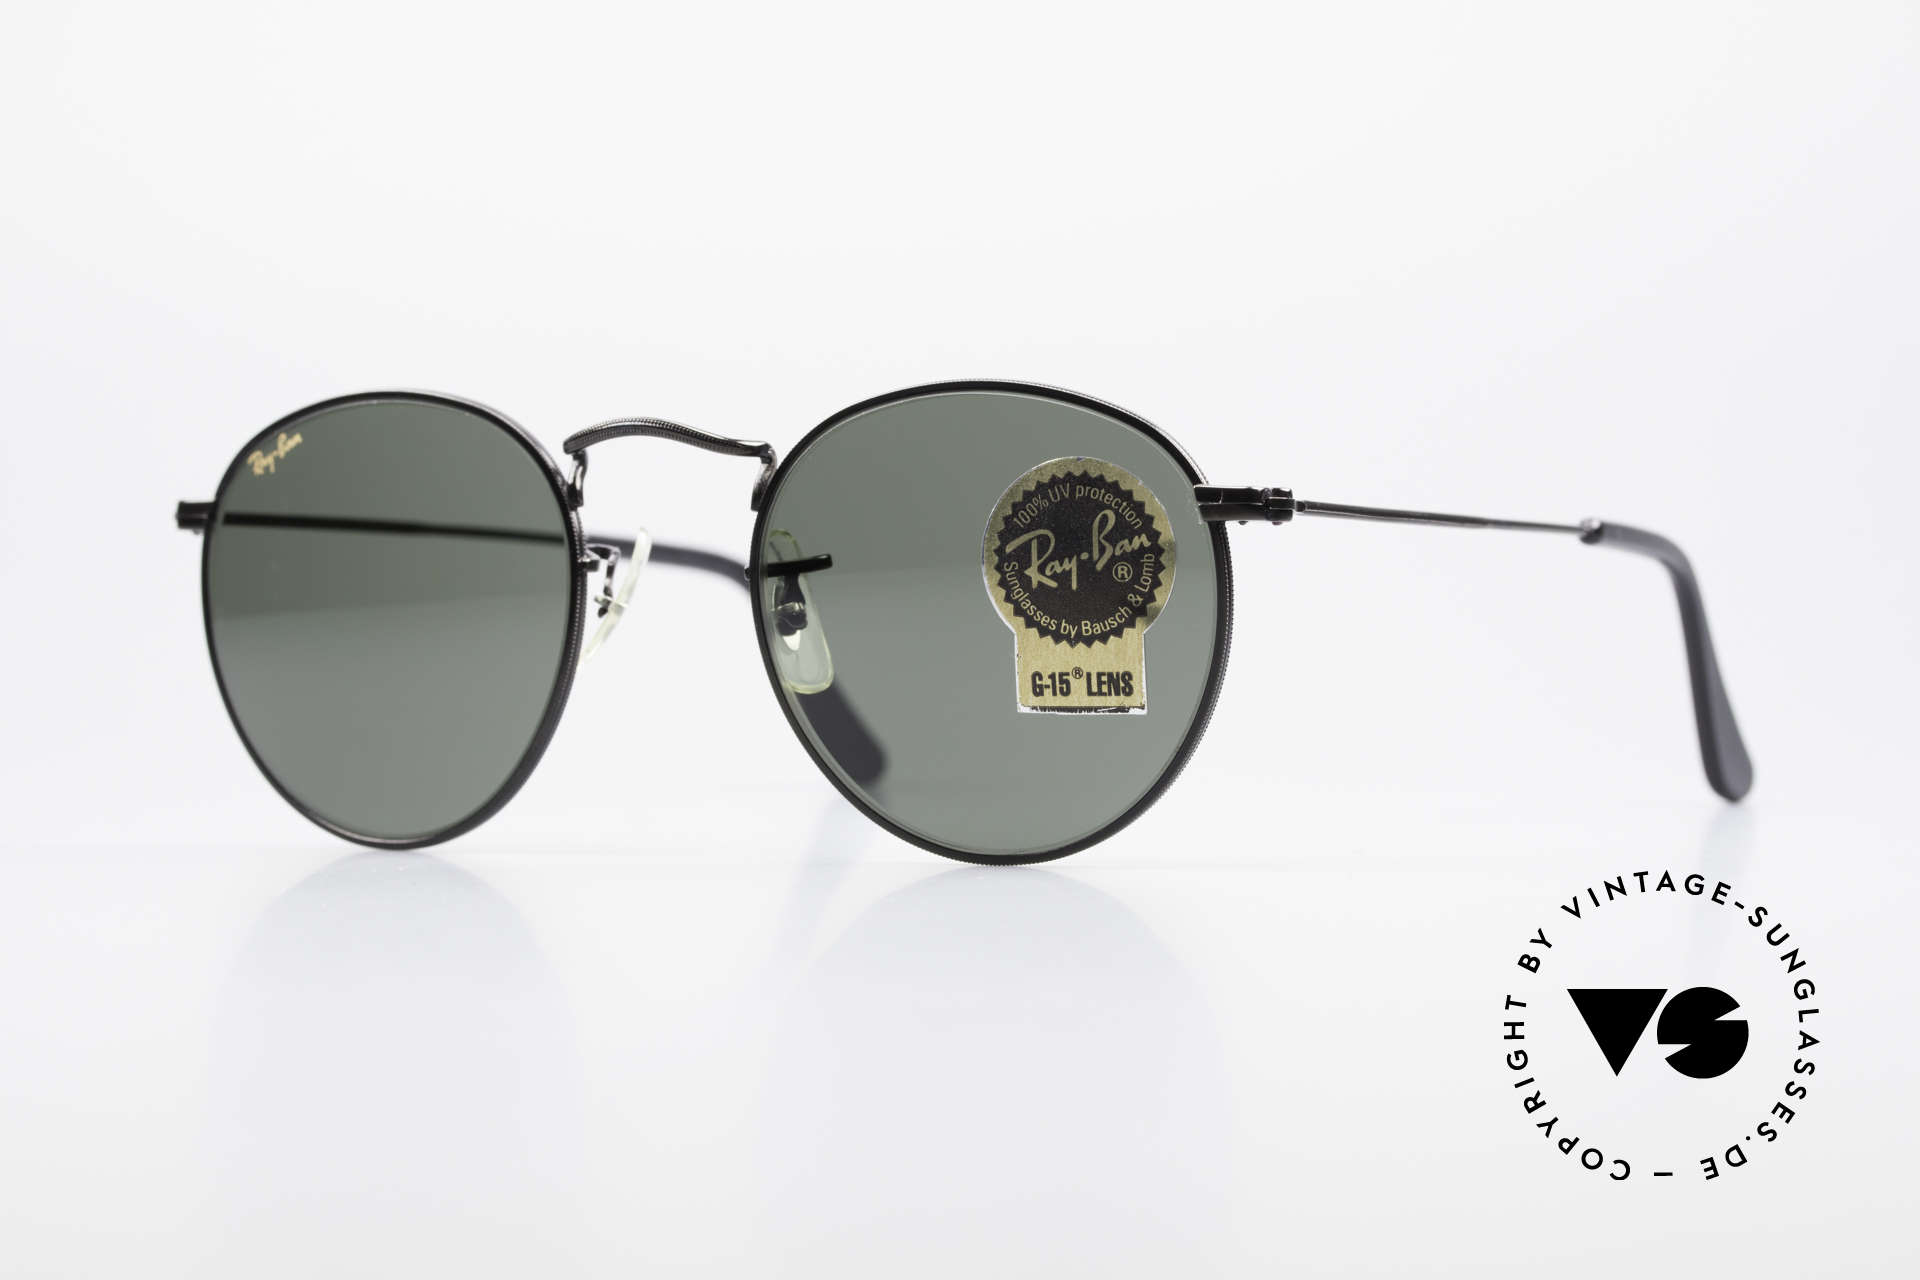 Ray Ban Round Metal 47 Small Round USA Sunglasses, small round 1980's Ray-Ban B&L vintage sunglasses, Made for Men and Women